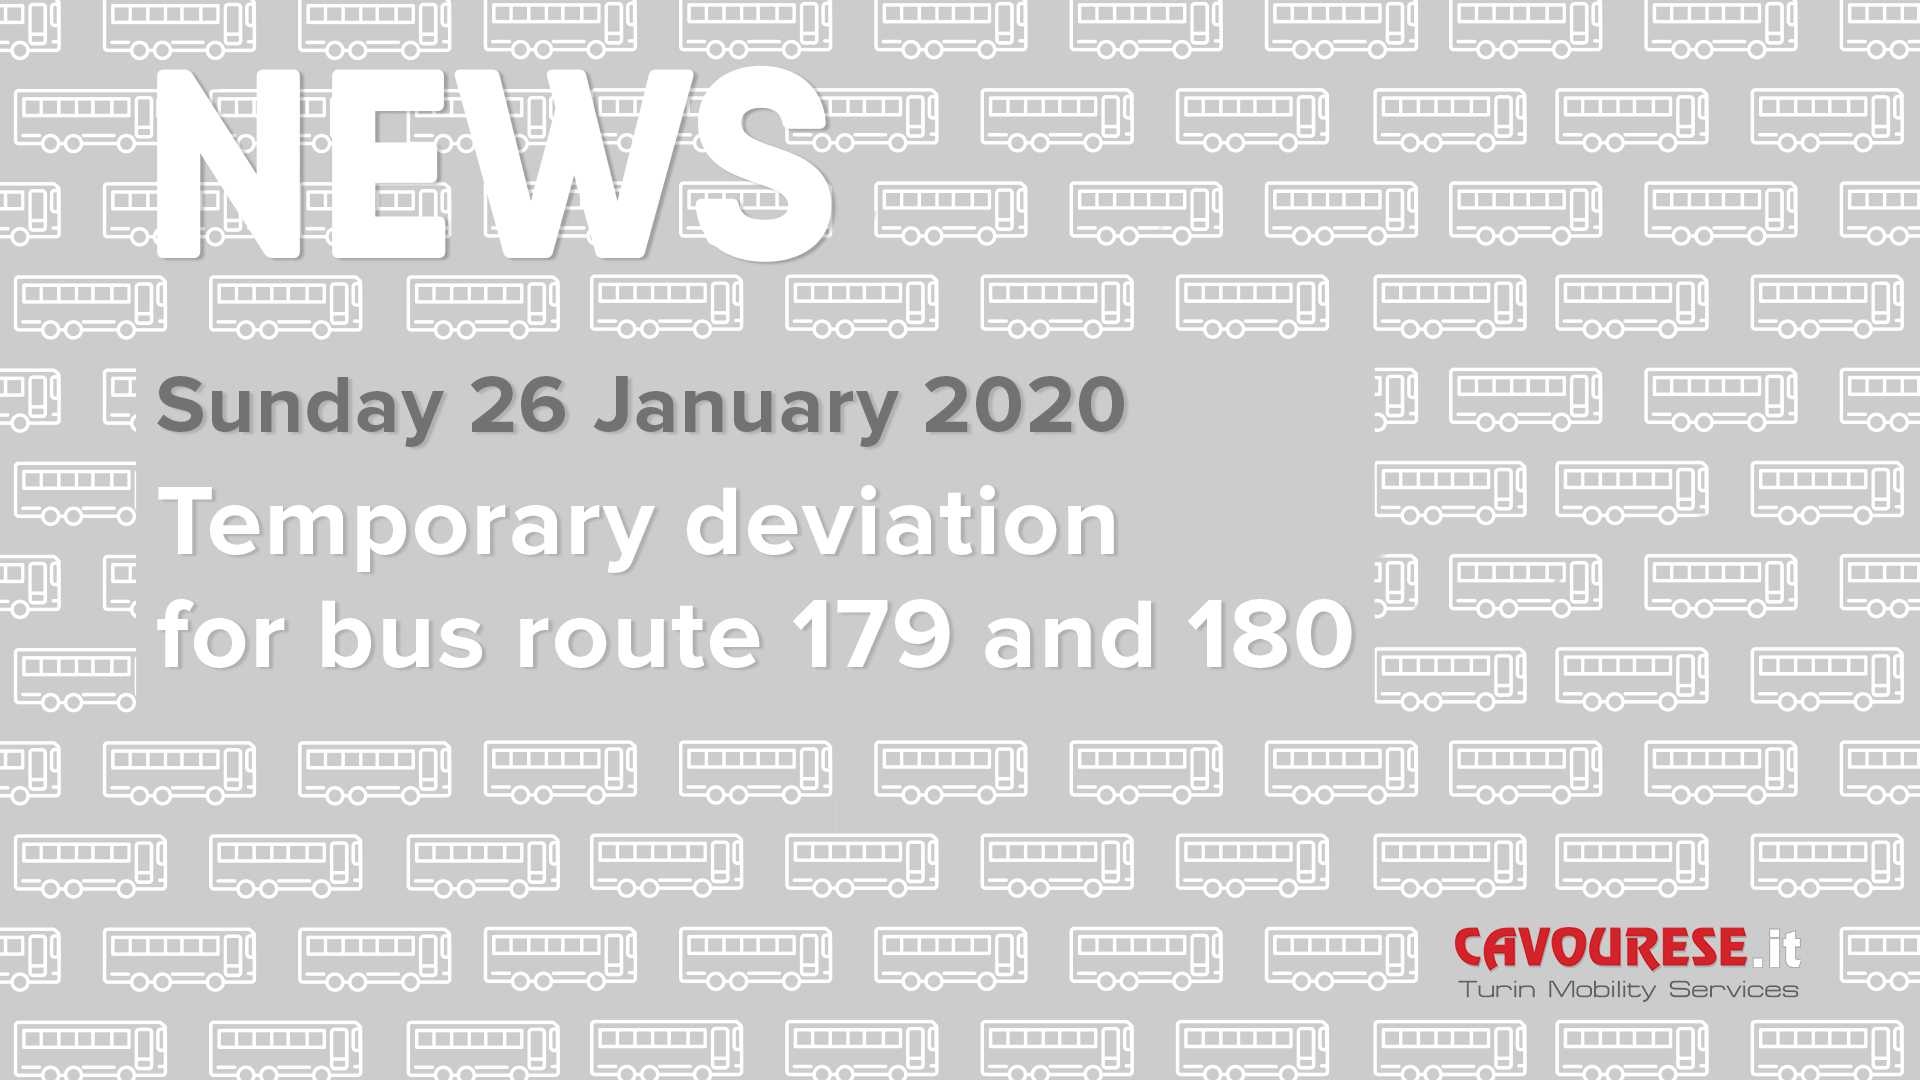 temporary deviation 179 and 180 deviation for sunday, january 26 2020